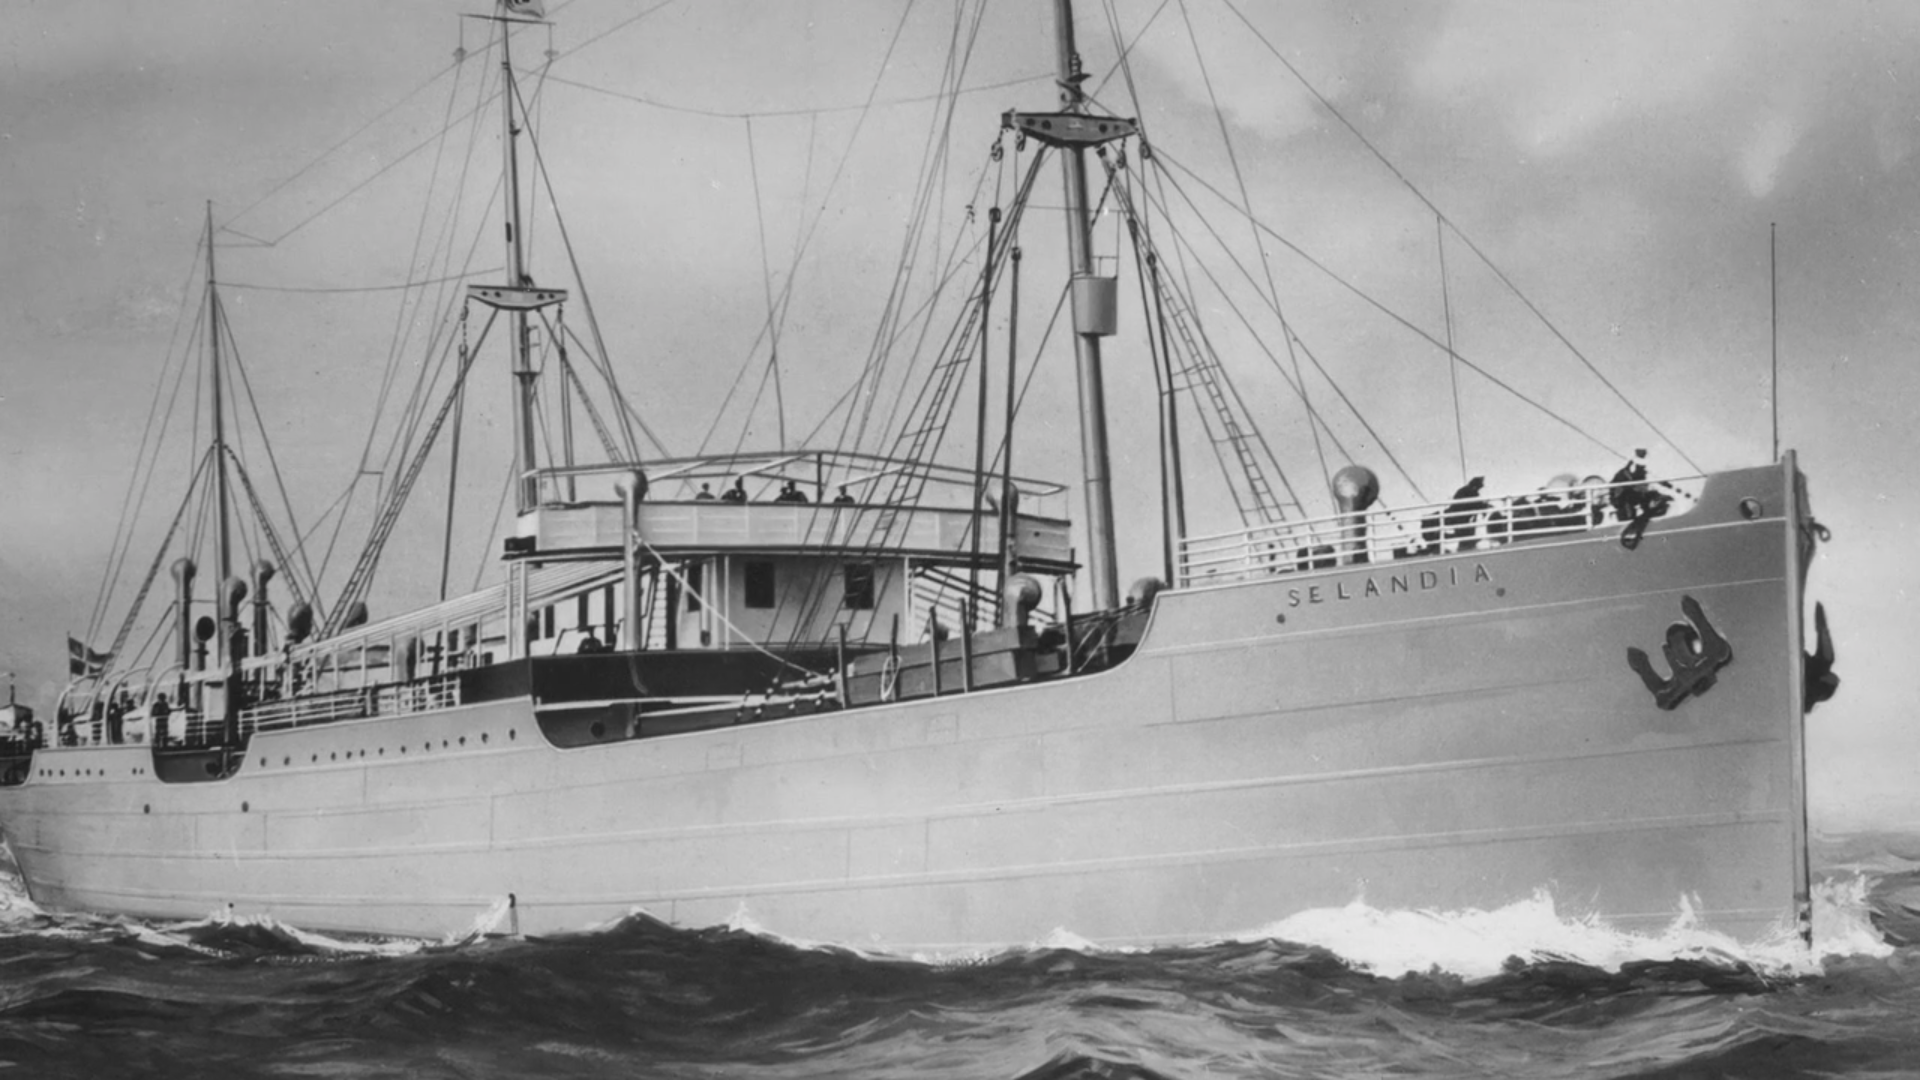 Selandia – The Ship That Changed the World